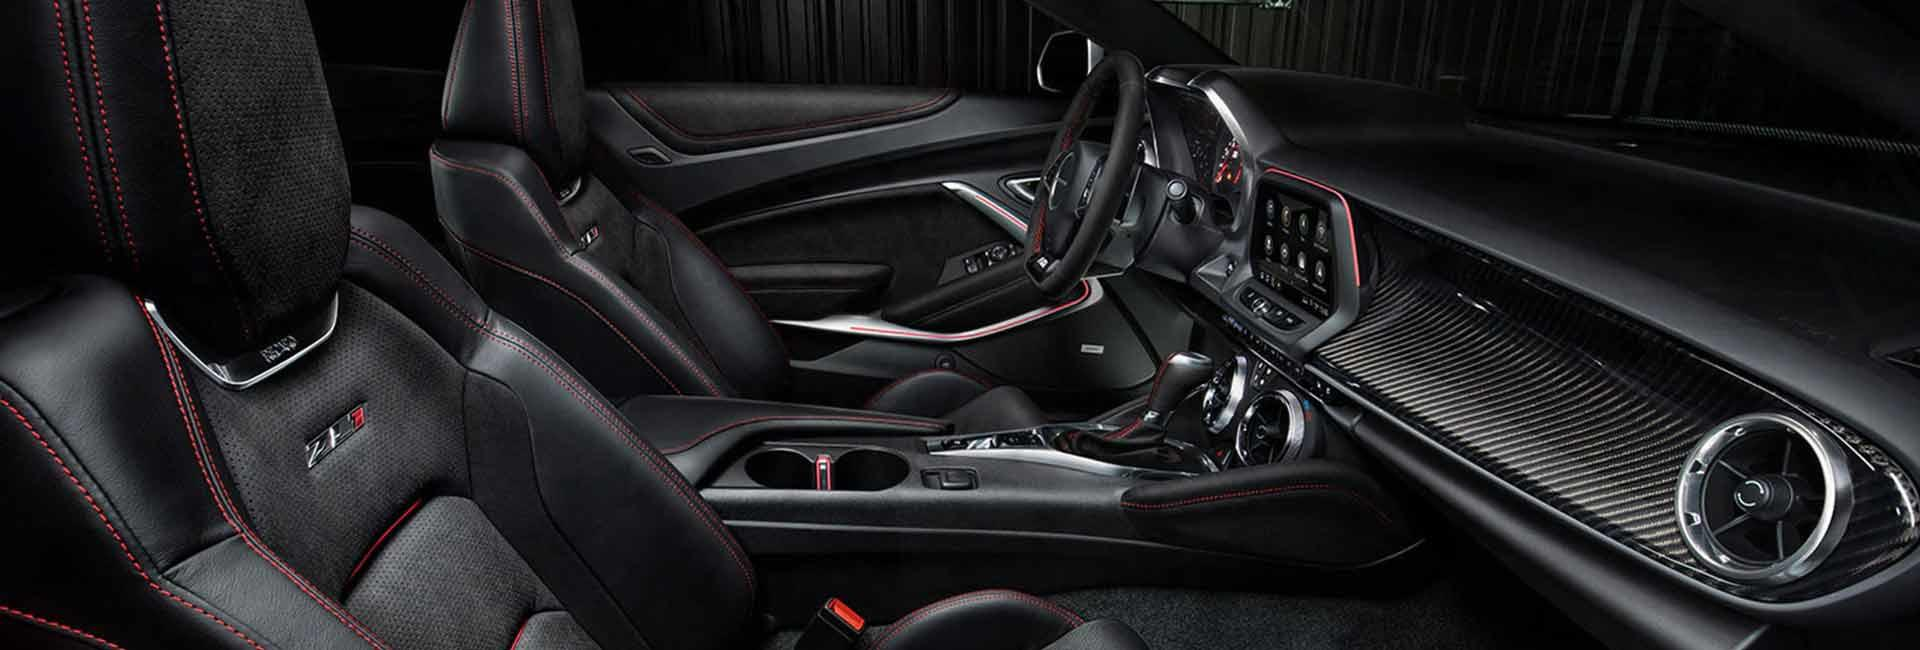 Side view of the interior of a 2021 Chevrolet Camaro